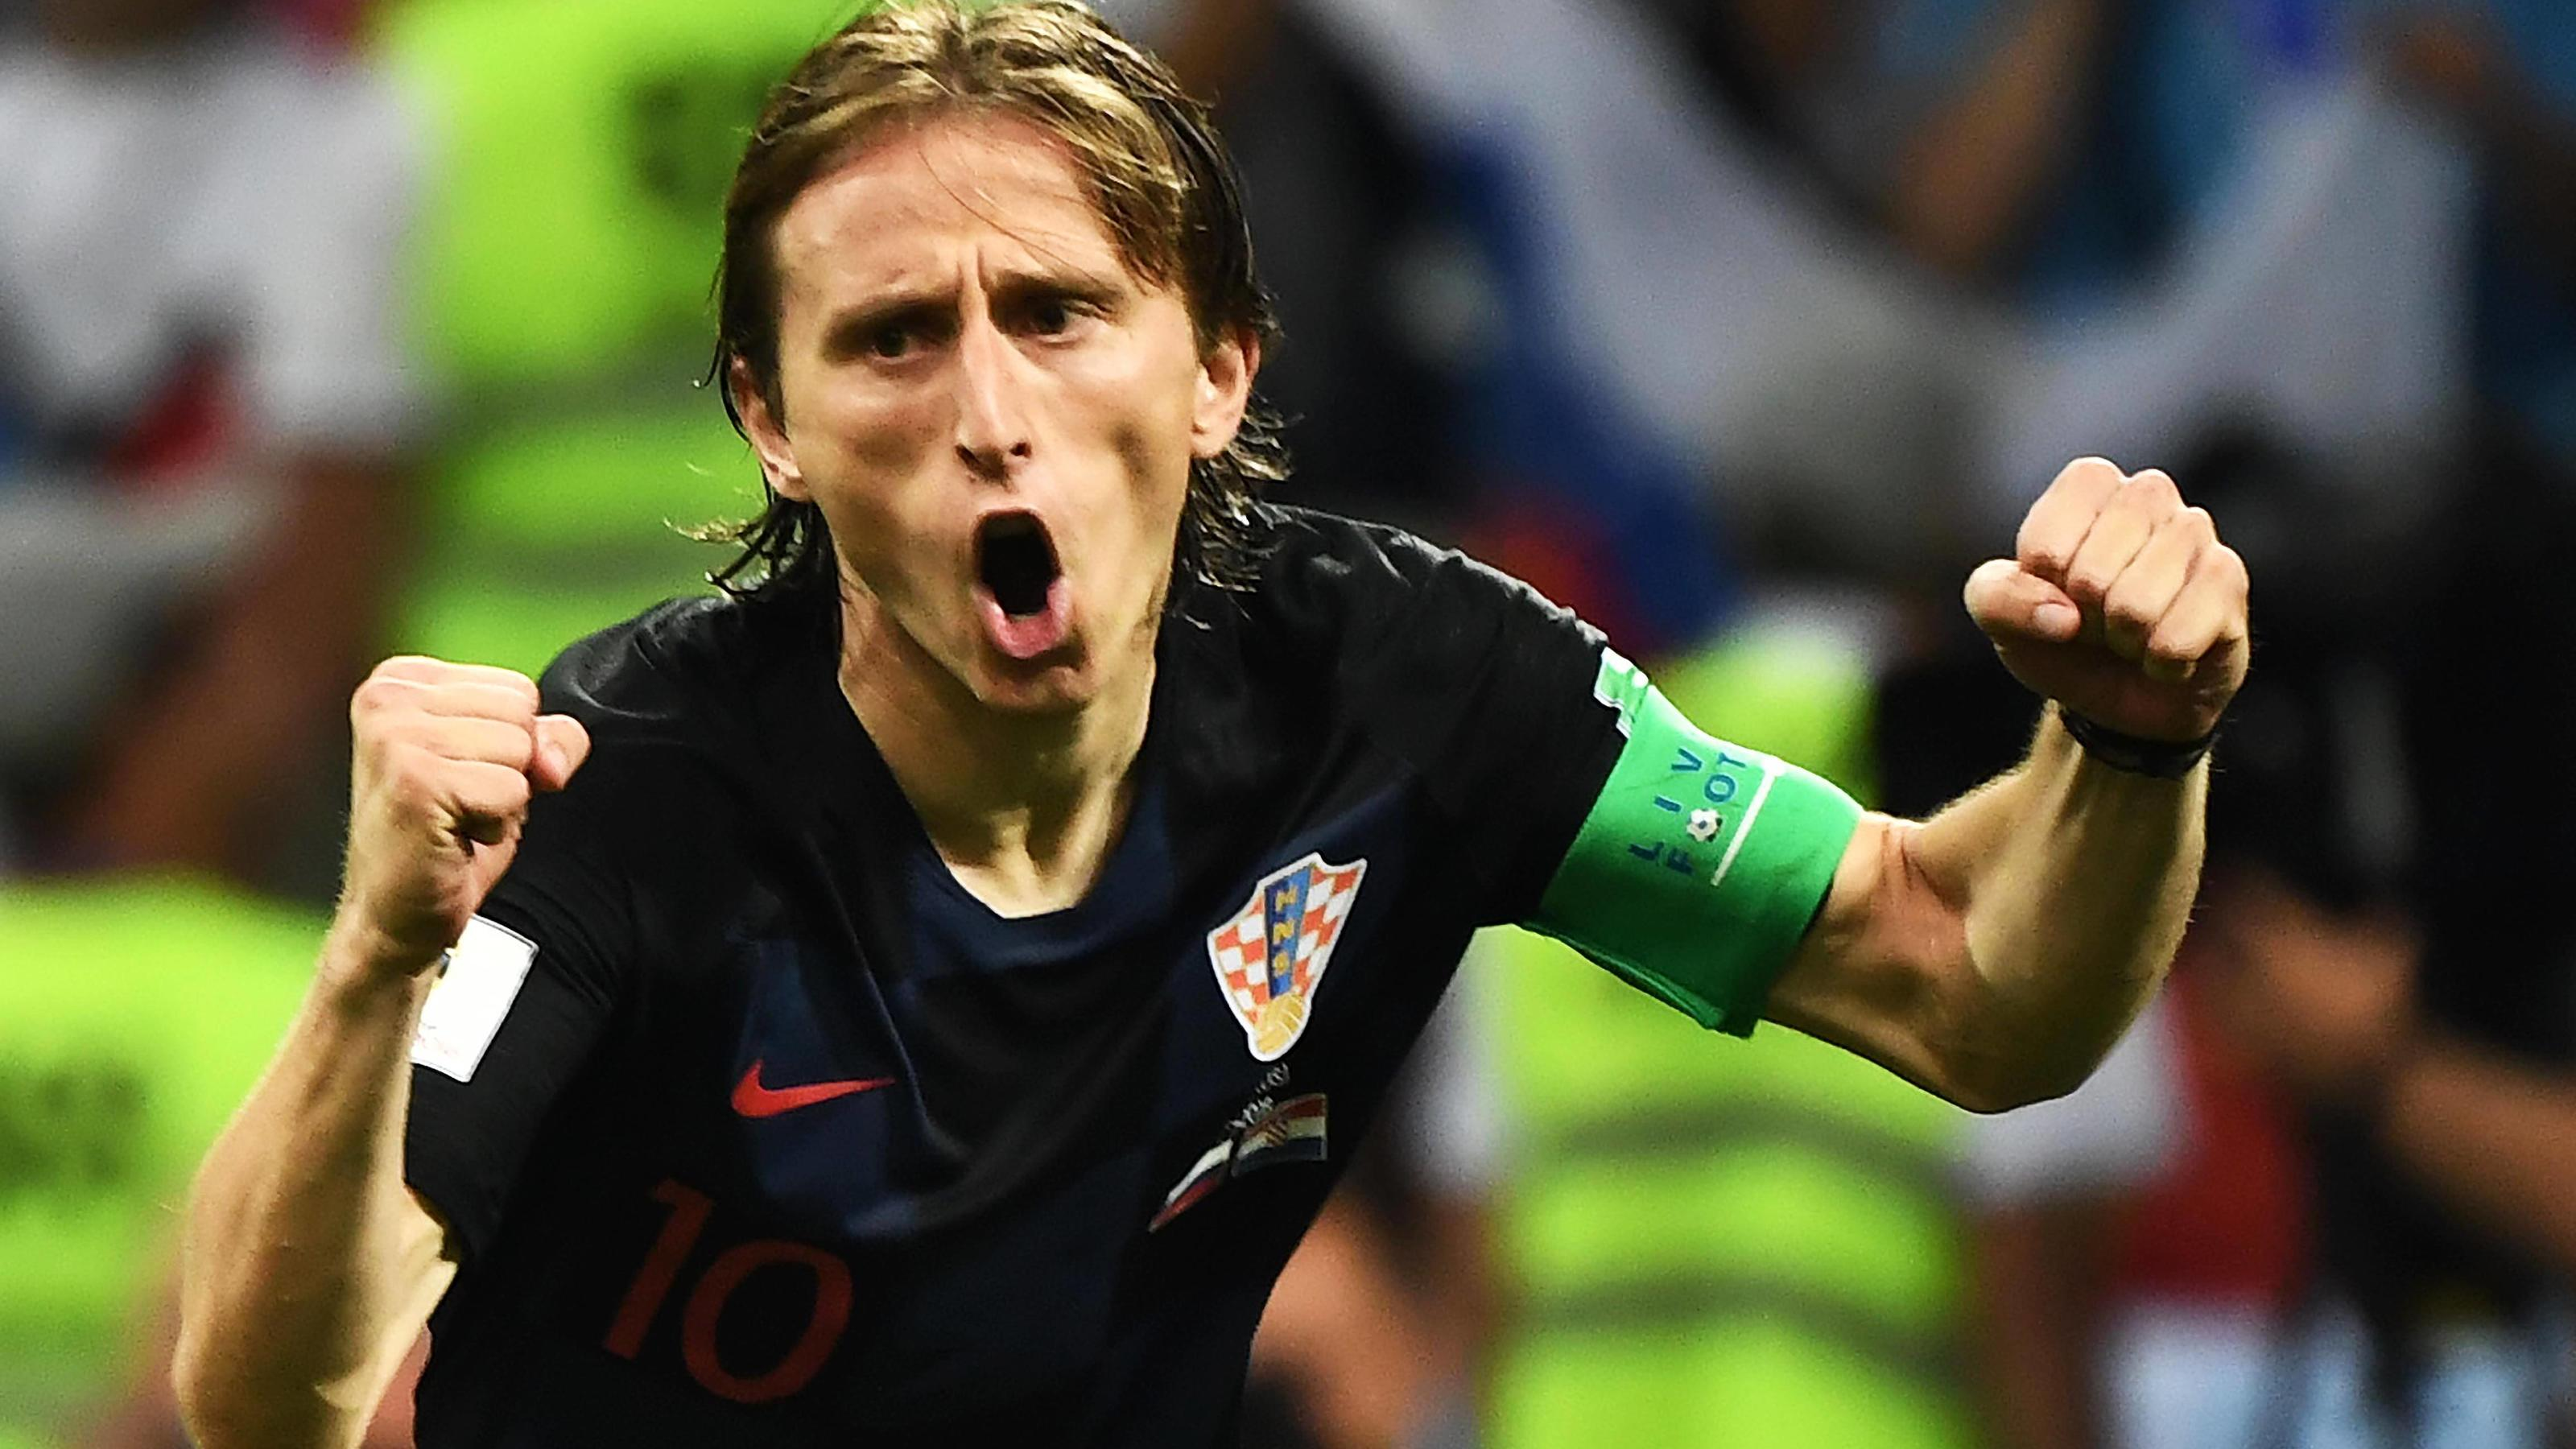 Luka Modric of Croatia reacts after scoring a penalty kick against Russia in their quarterfinal match during the 2018 FIFA World Cup WM Weltmeisterschaft Fussball in Sochi, Russia, 7 July 2018. Russia¡¯s 2018 World Cup is over. The hosts are out. The